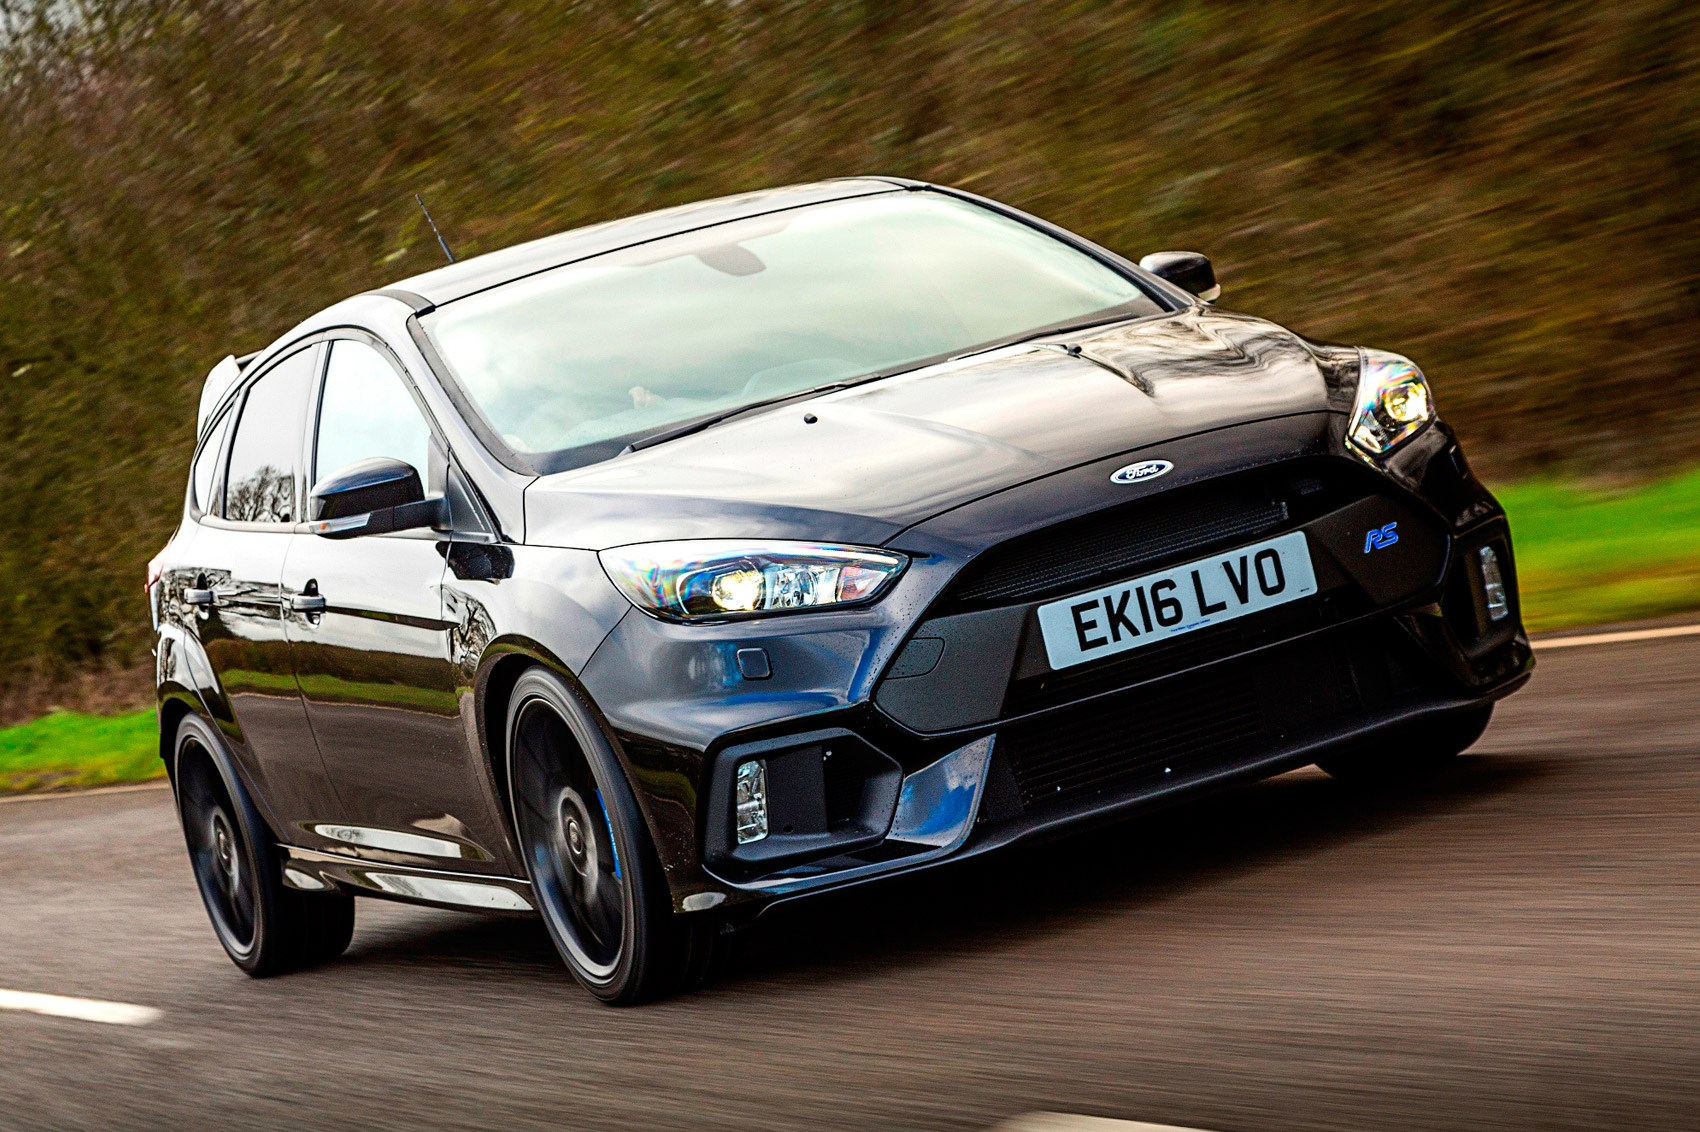 mountune tweaks rs upgrade pack for new ford focus rs launched by car magazine. Black Bedroom Furniture Sets. Home Design Ideas